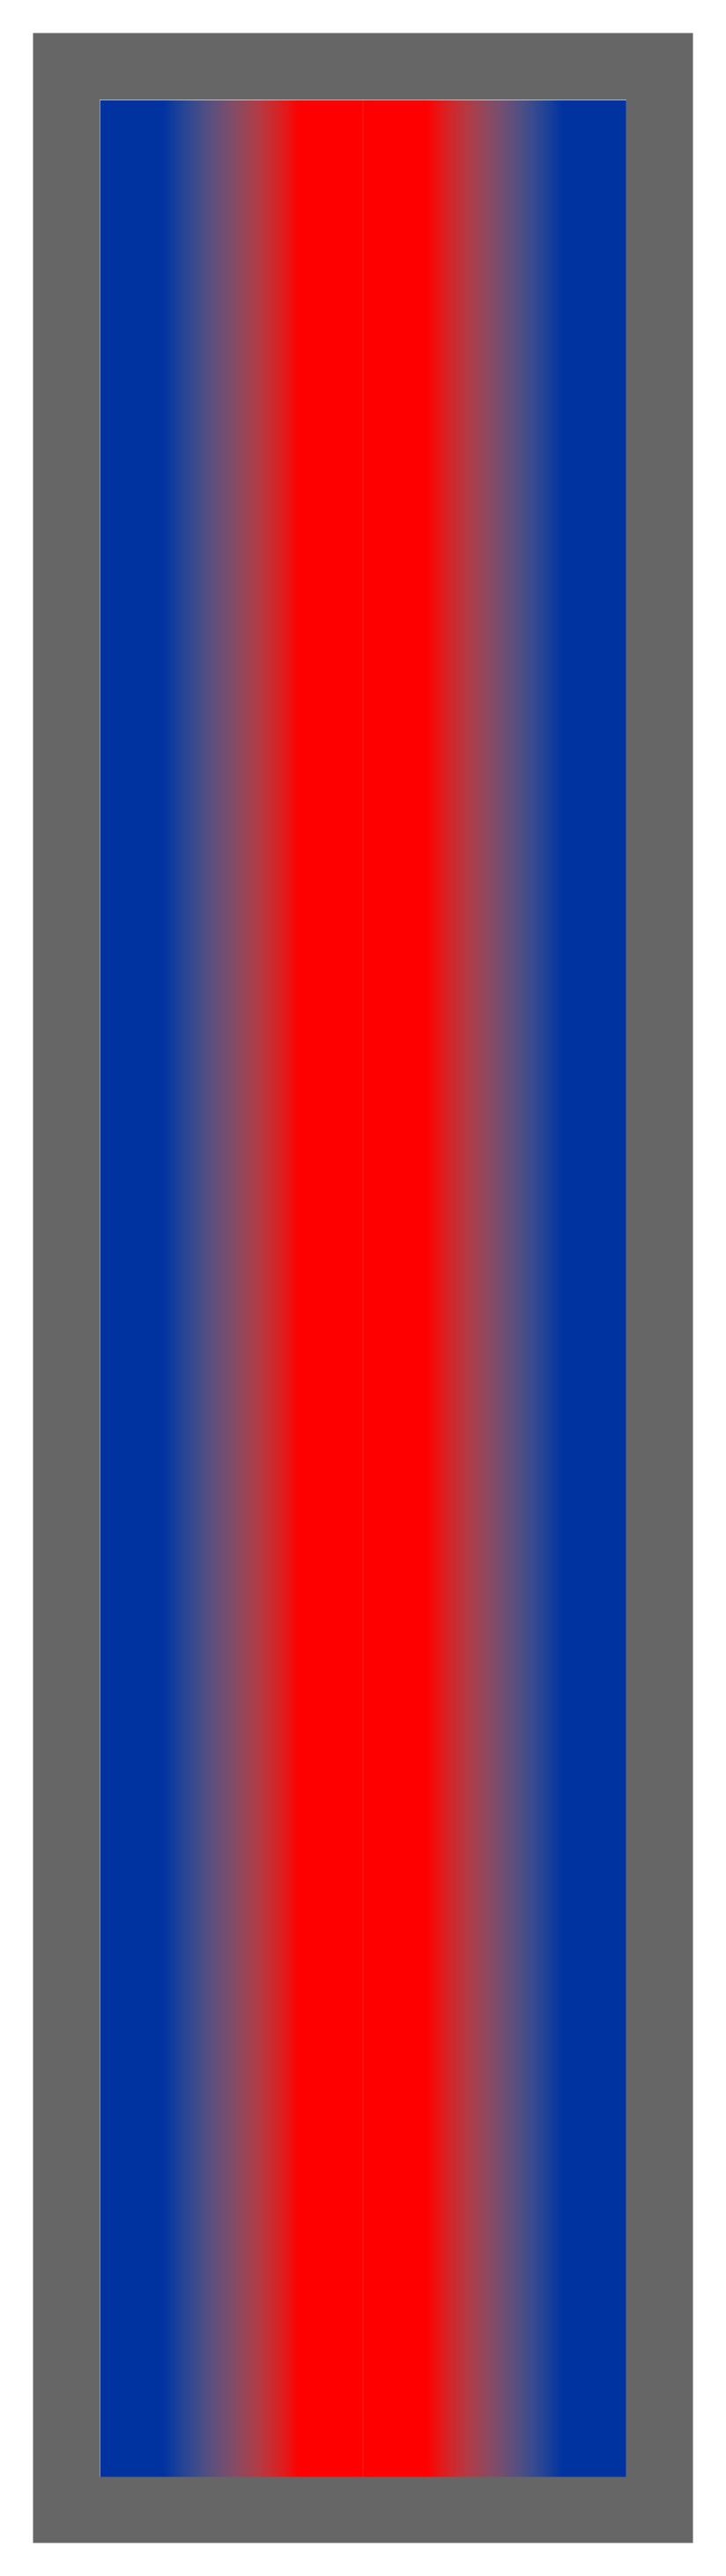 Royal Blue-Red-Royal Blue Ombre Stripe